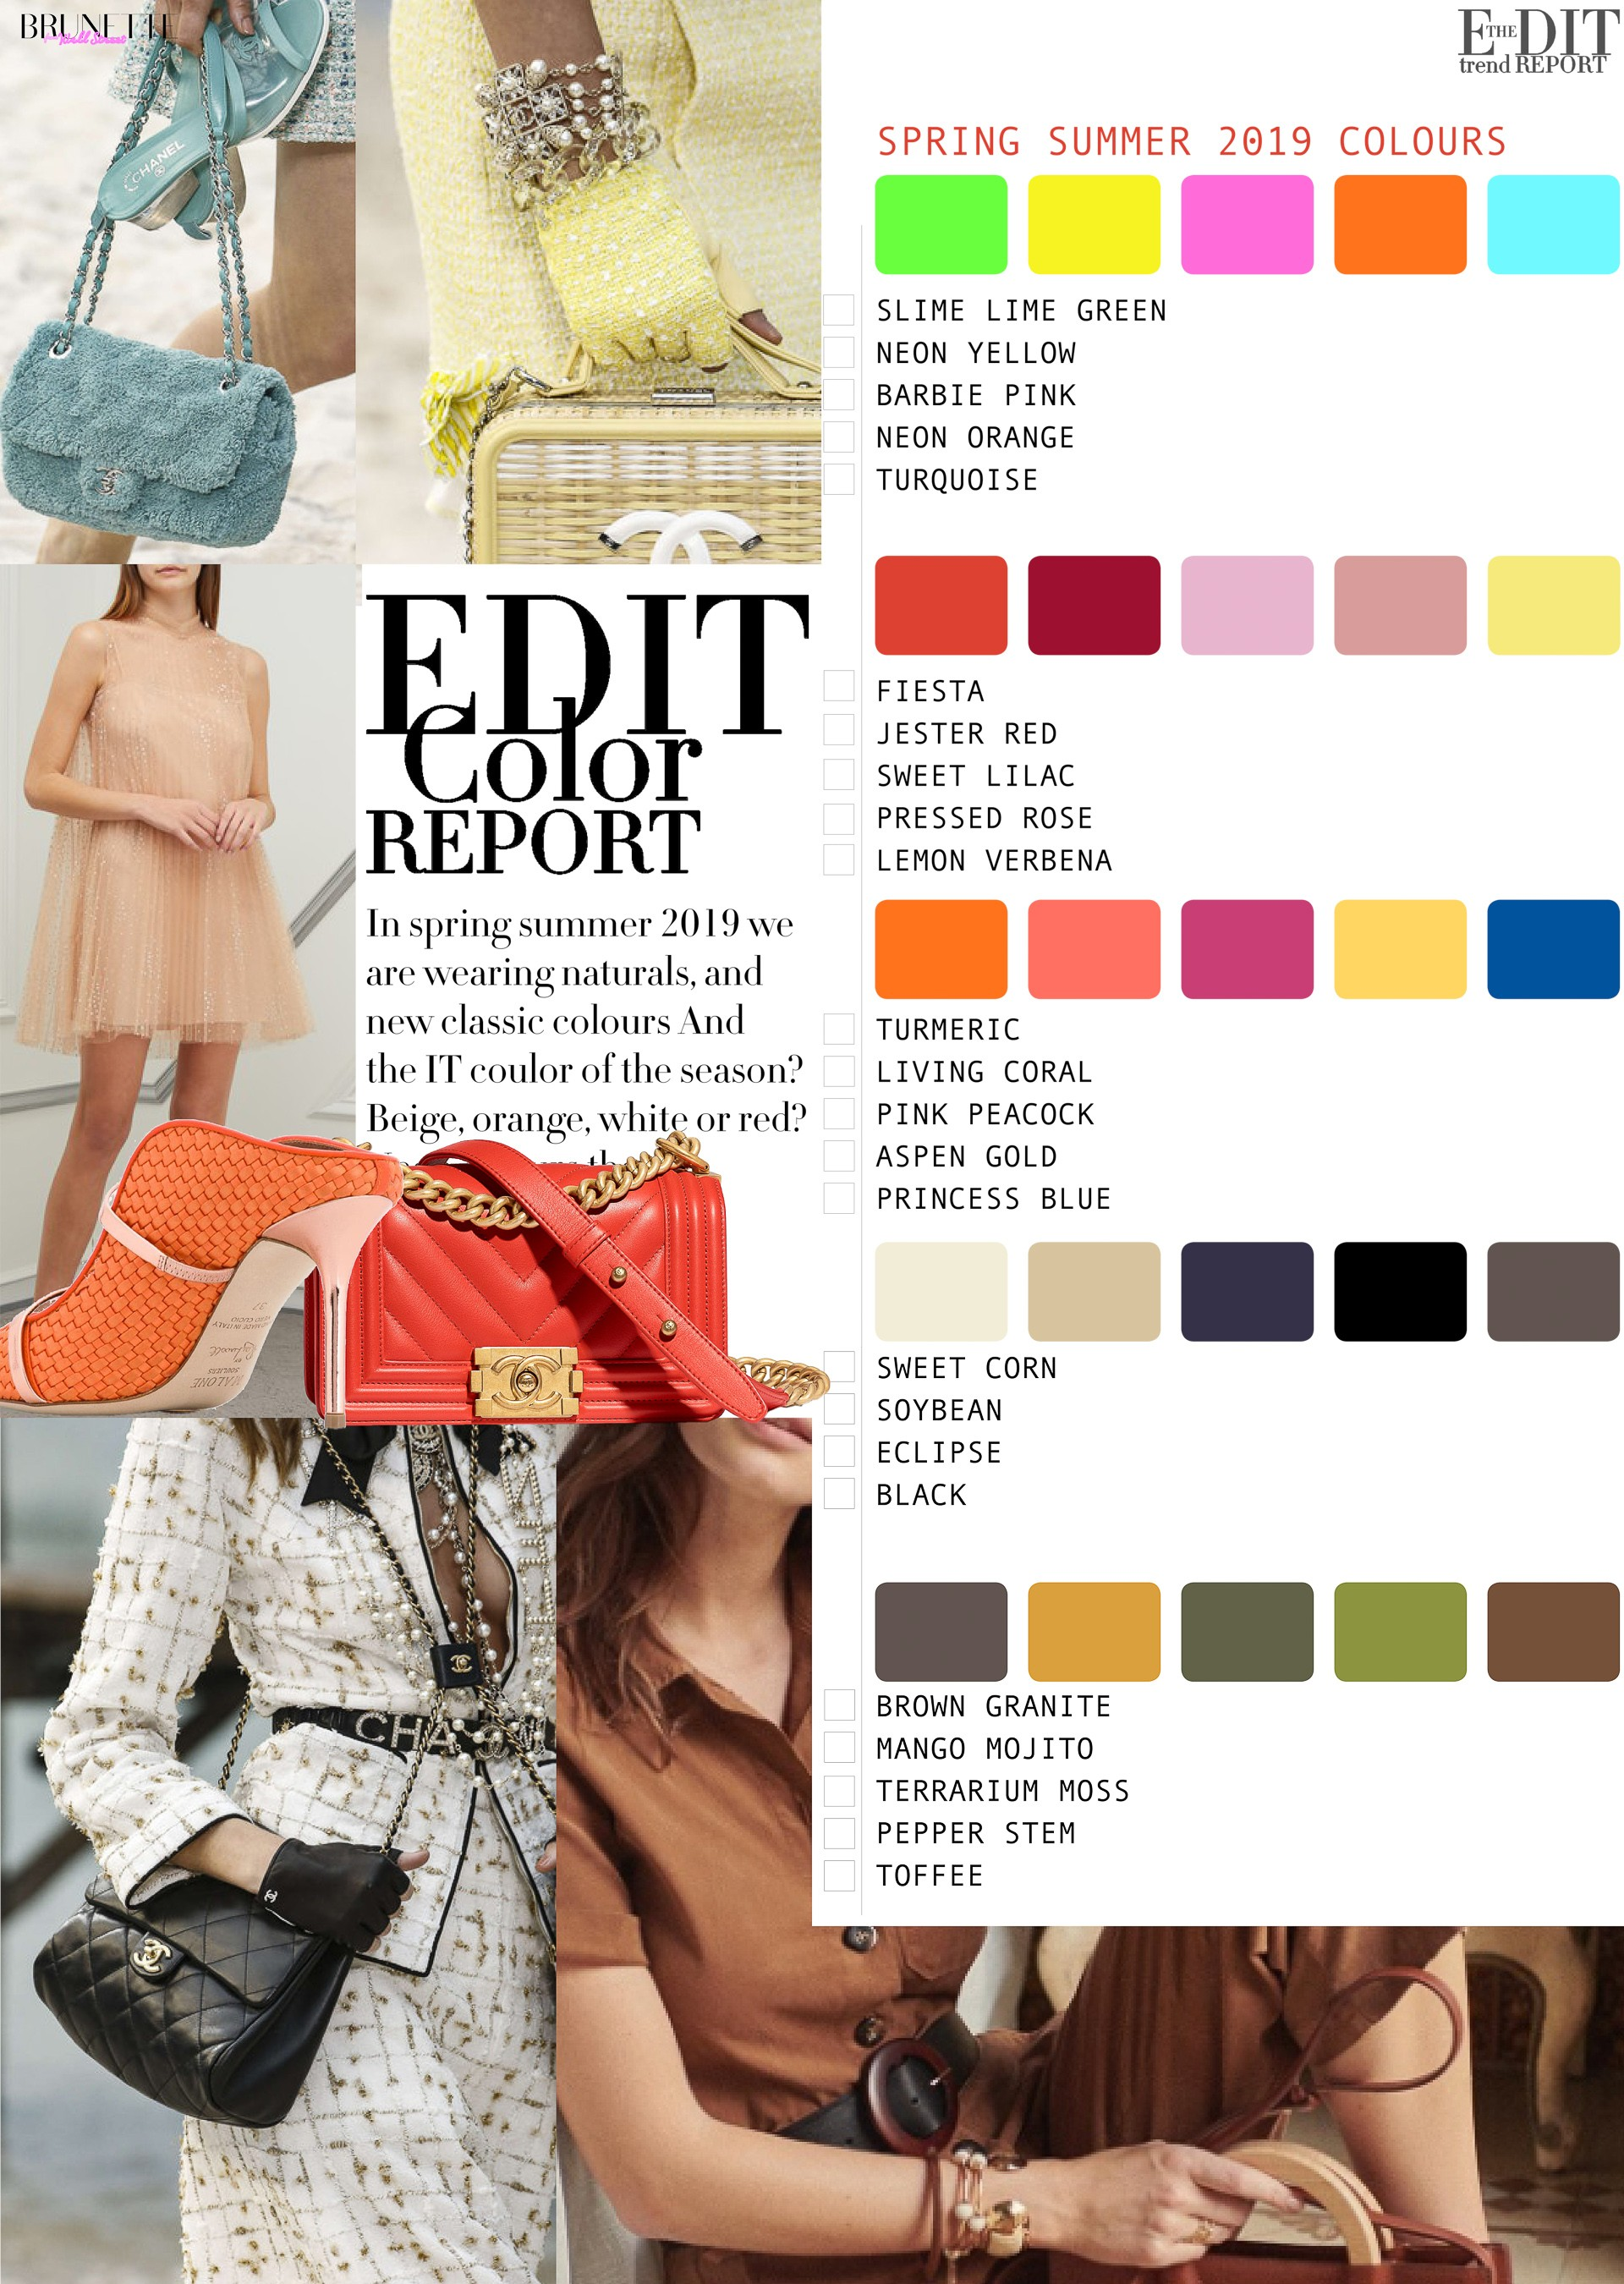 df00c02357ad SPRING SUMMER 2019 COLORS IN FASHION